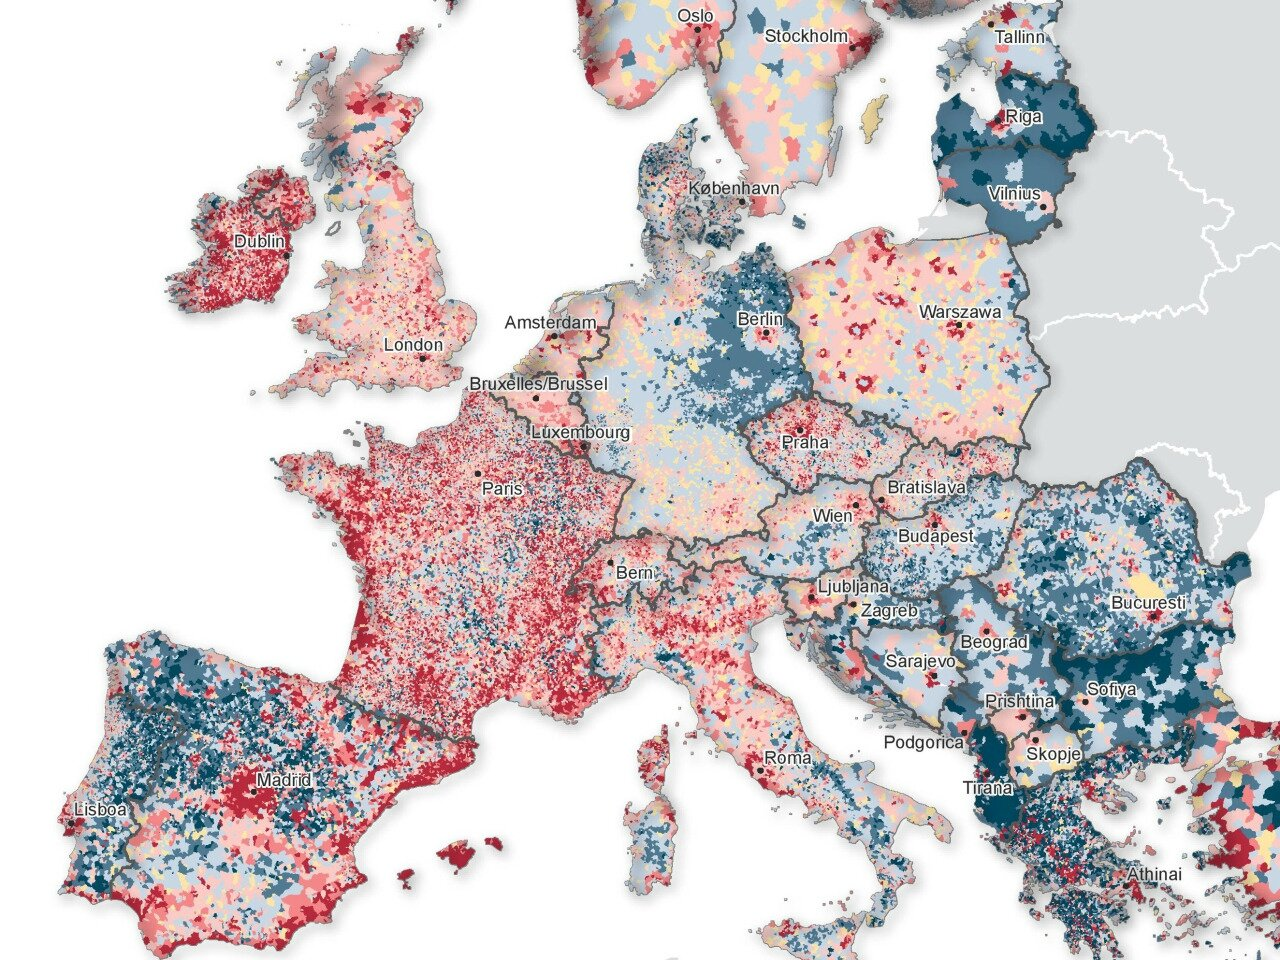 Population increases and decreases in Europe